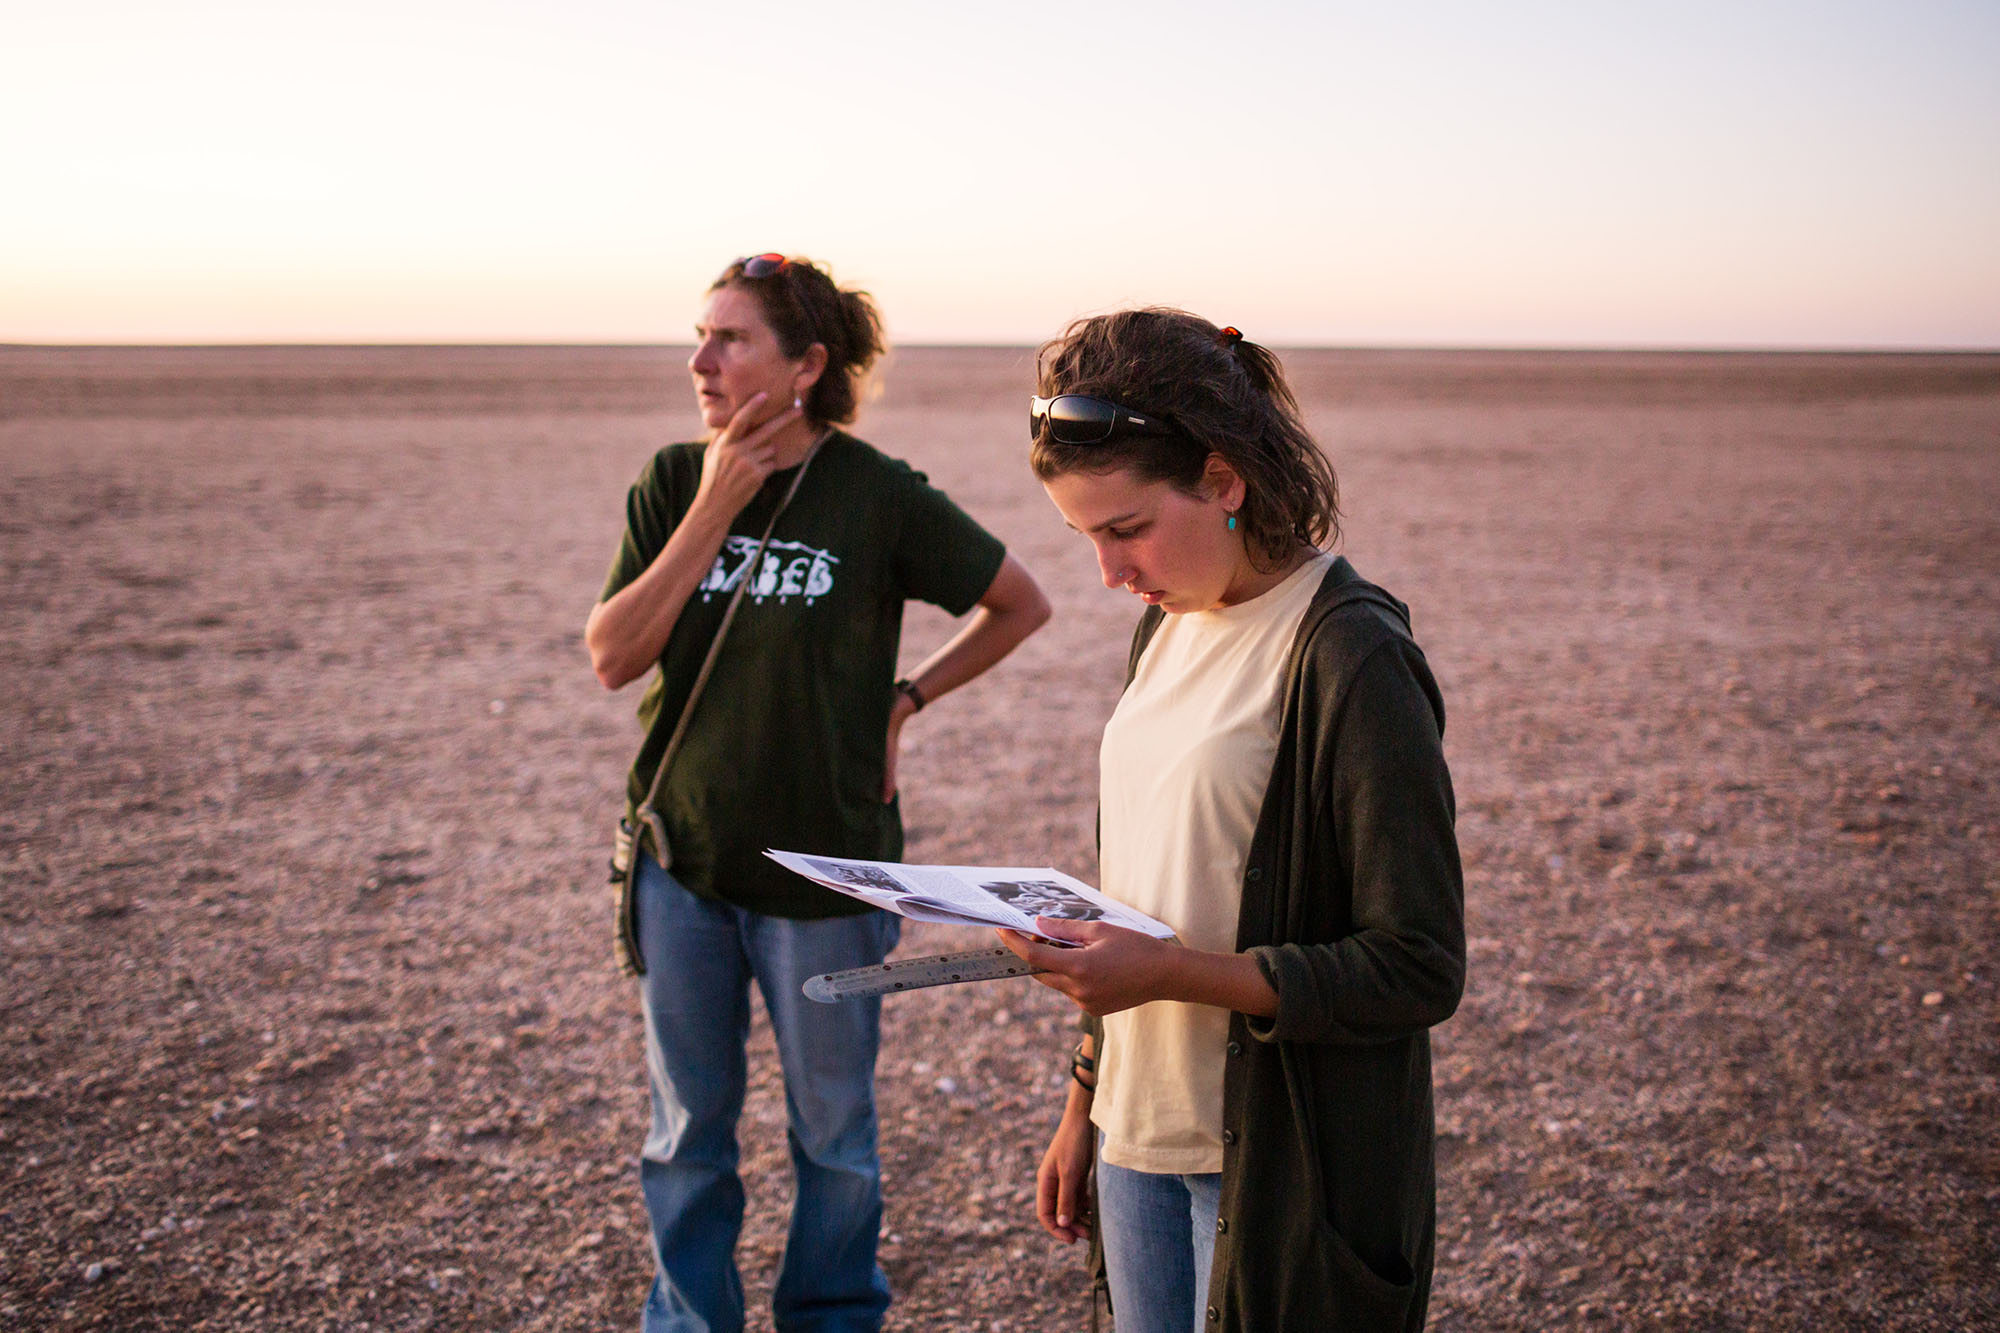 Dr Gillian Maggs-Kölling and Meg Schmitt (foreground) of Gobabeb try to locate the small plant on the extensive plains.